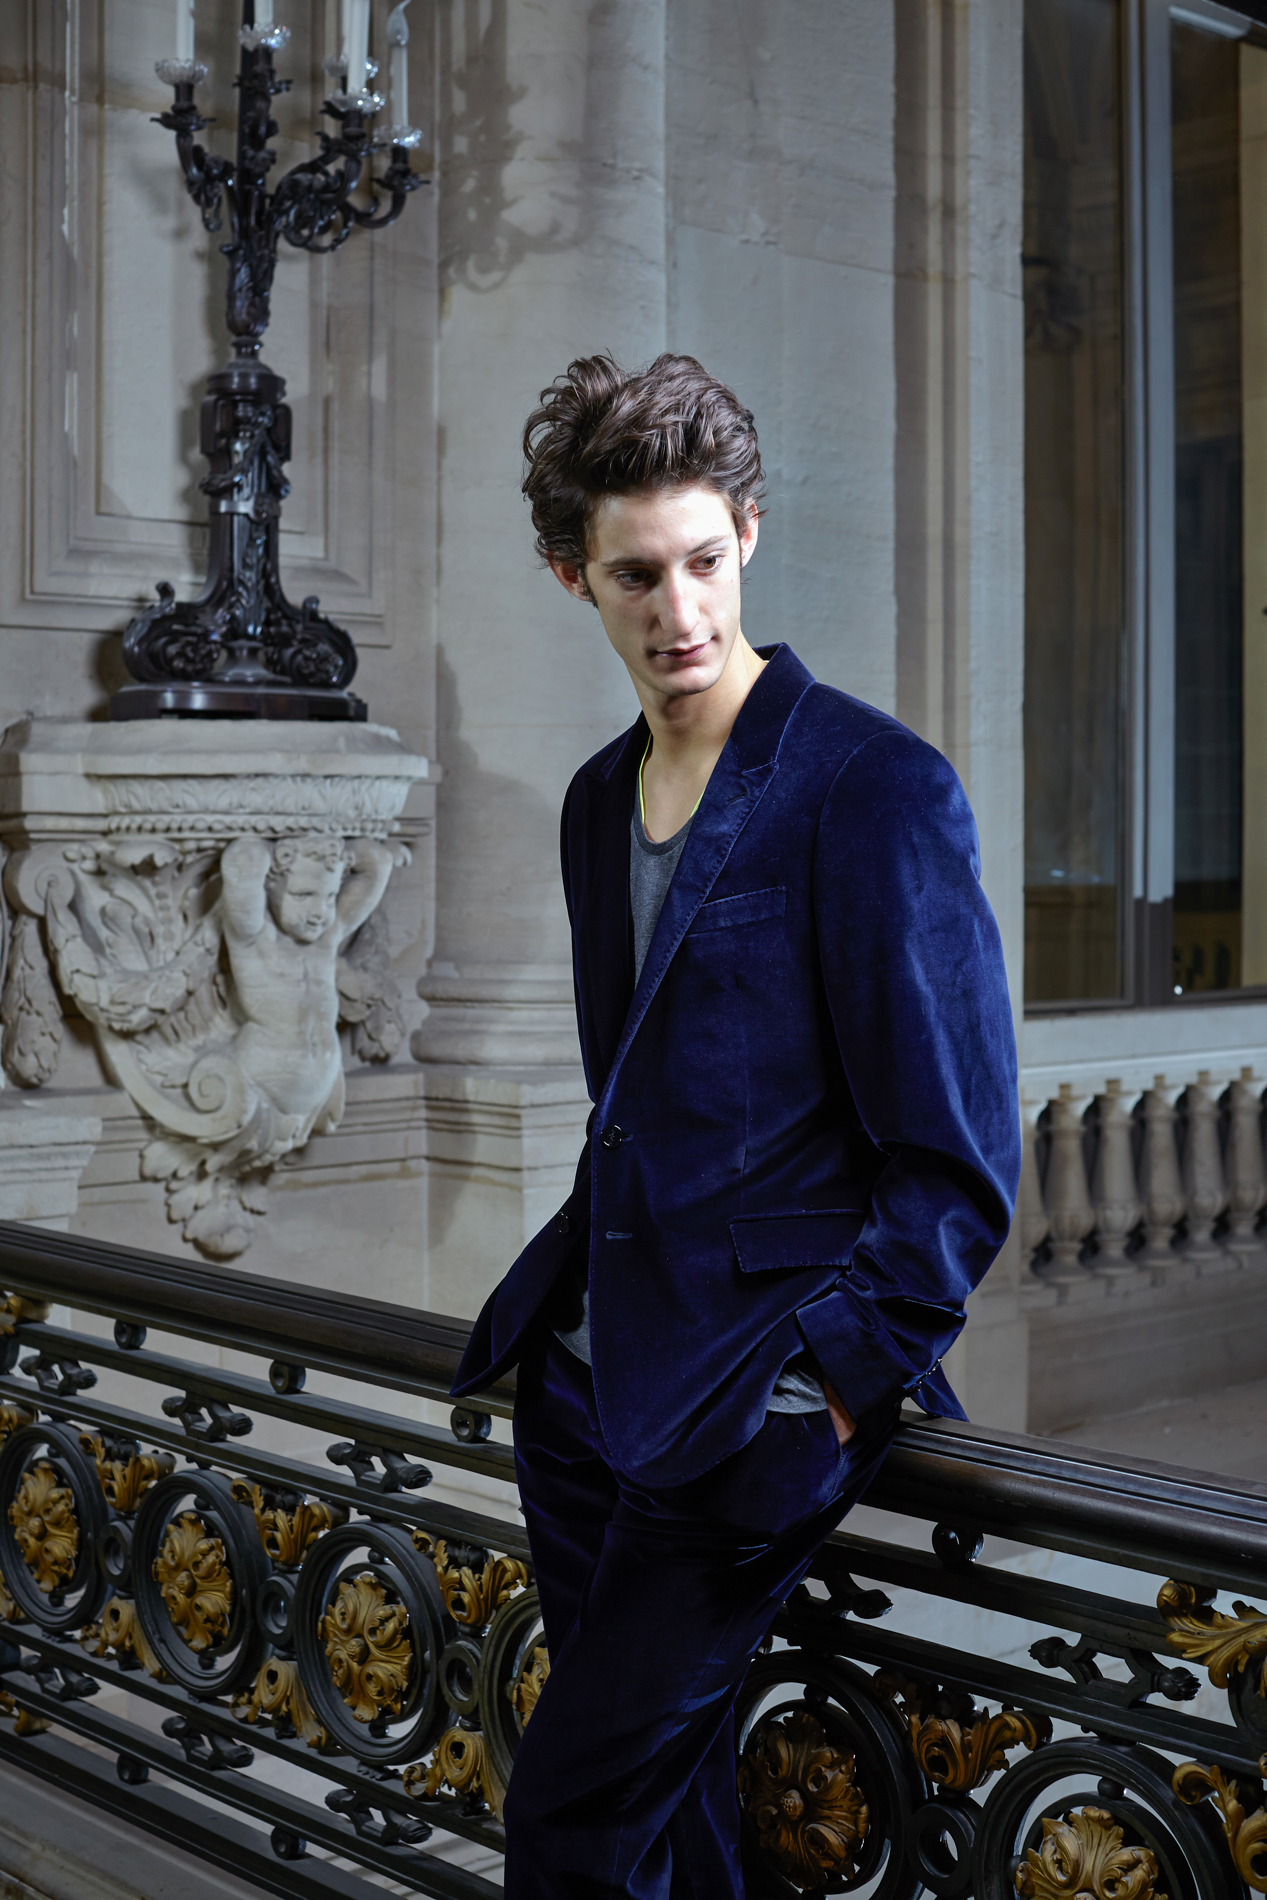 ACTOR PIERRE NINEY FOR D LA REPUBBLICA